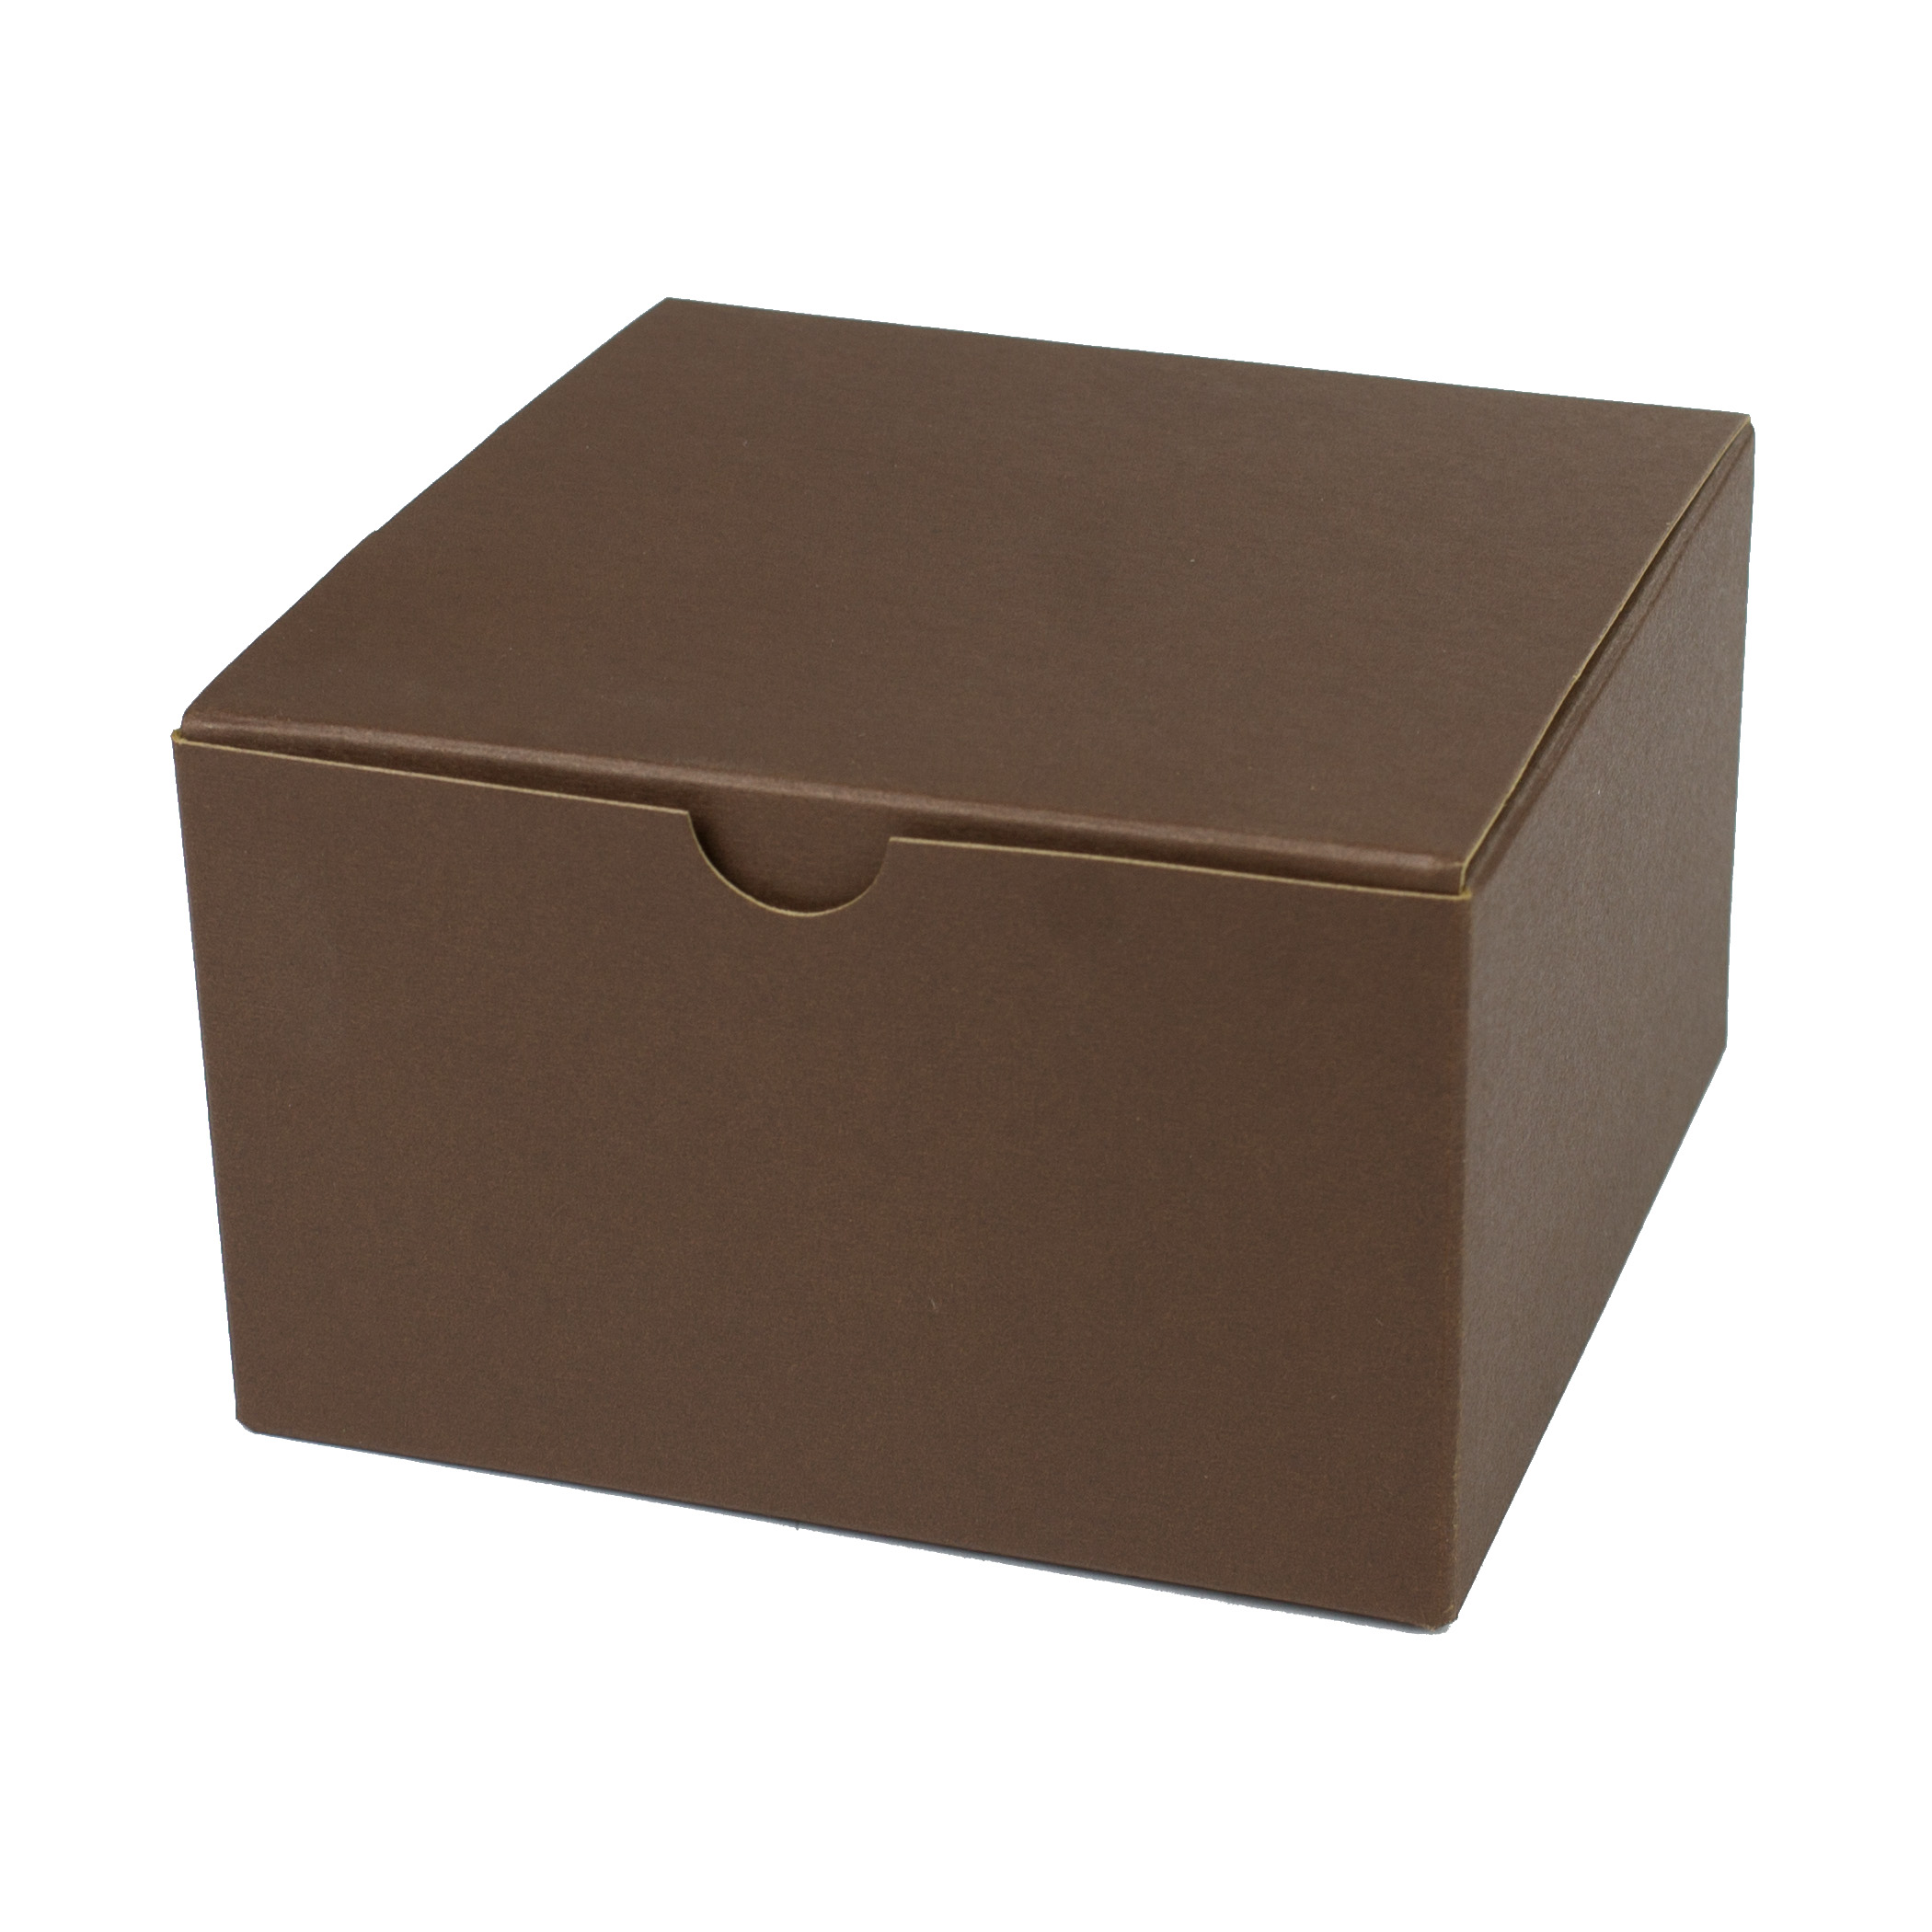 5 x 5 x 3 COCOA TINTED TUCK-TOP GIFT BOXES